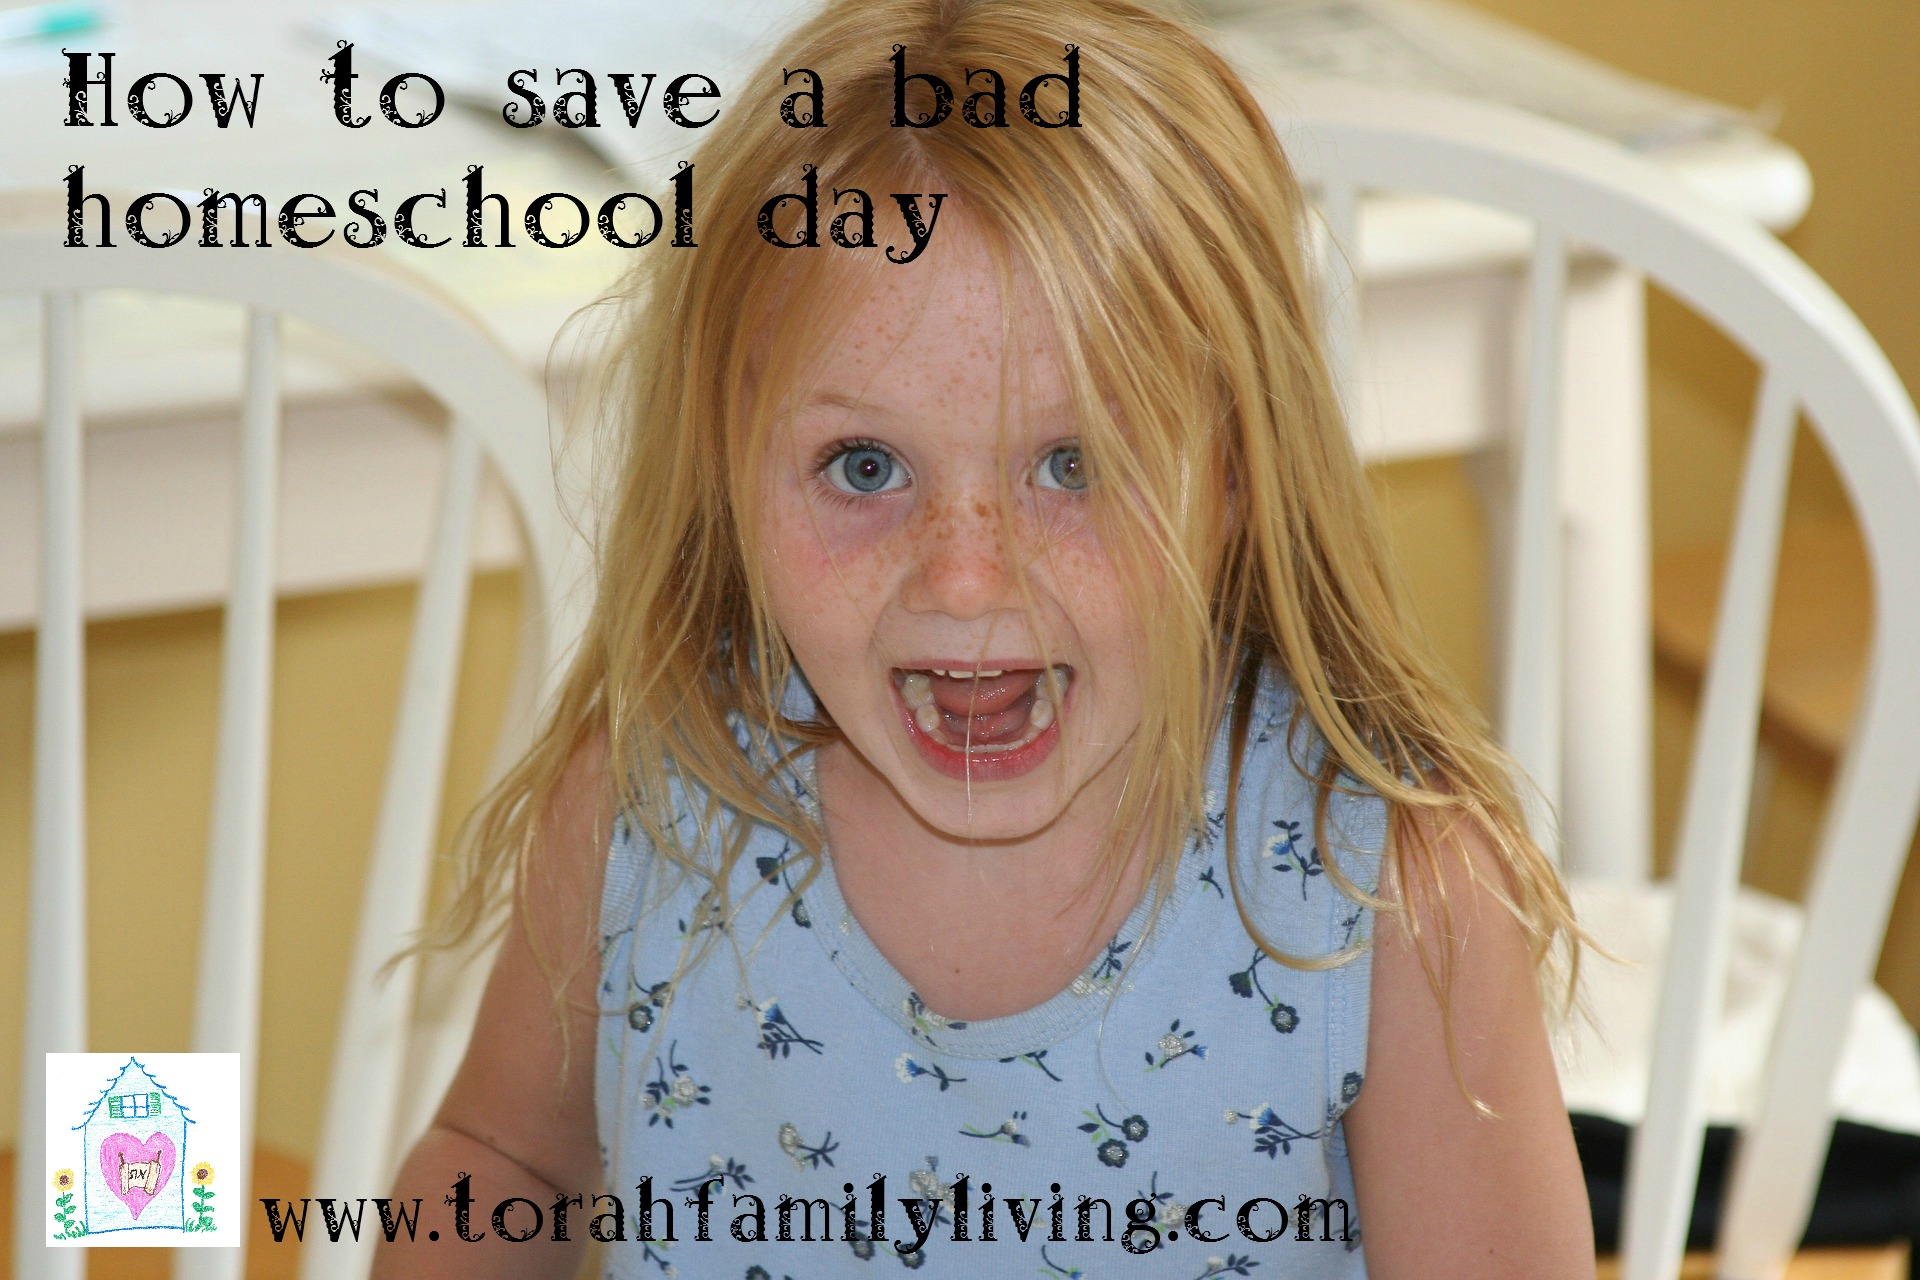 How to save a homeschool day gone bad